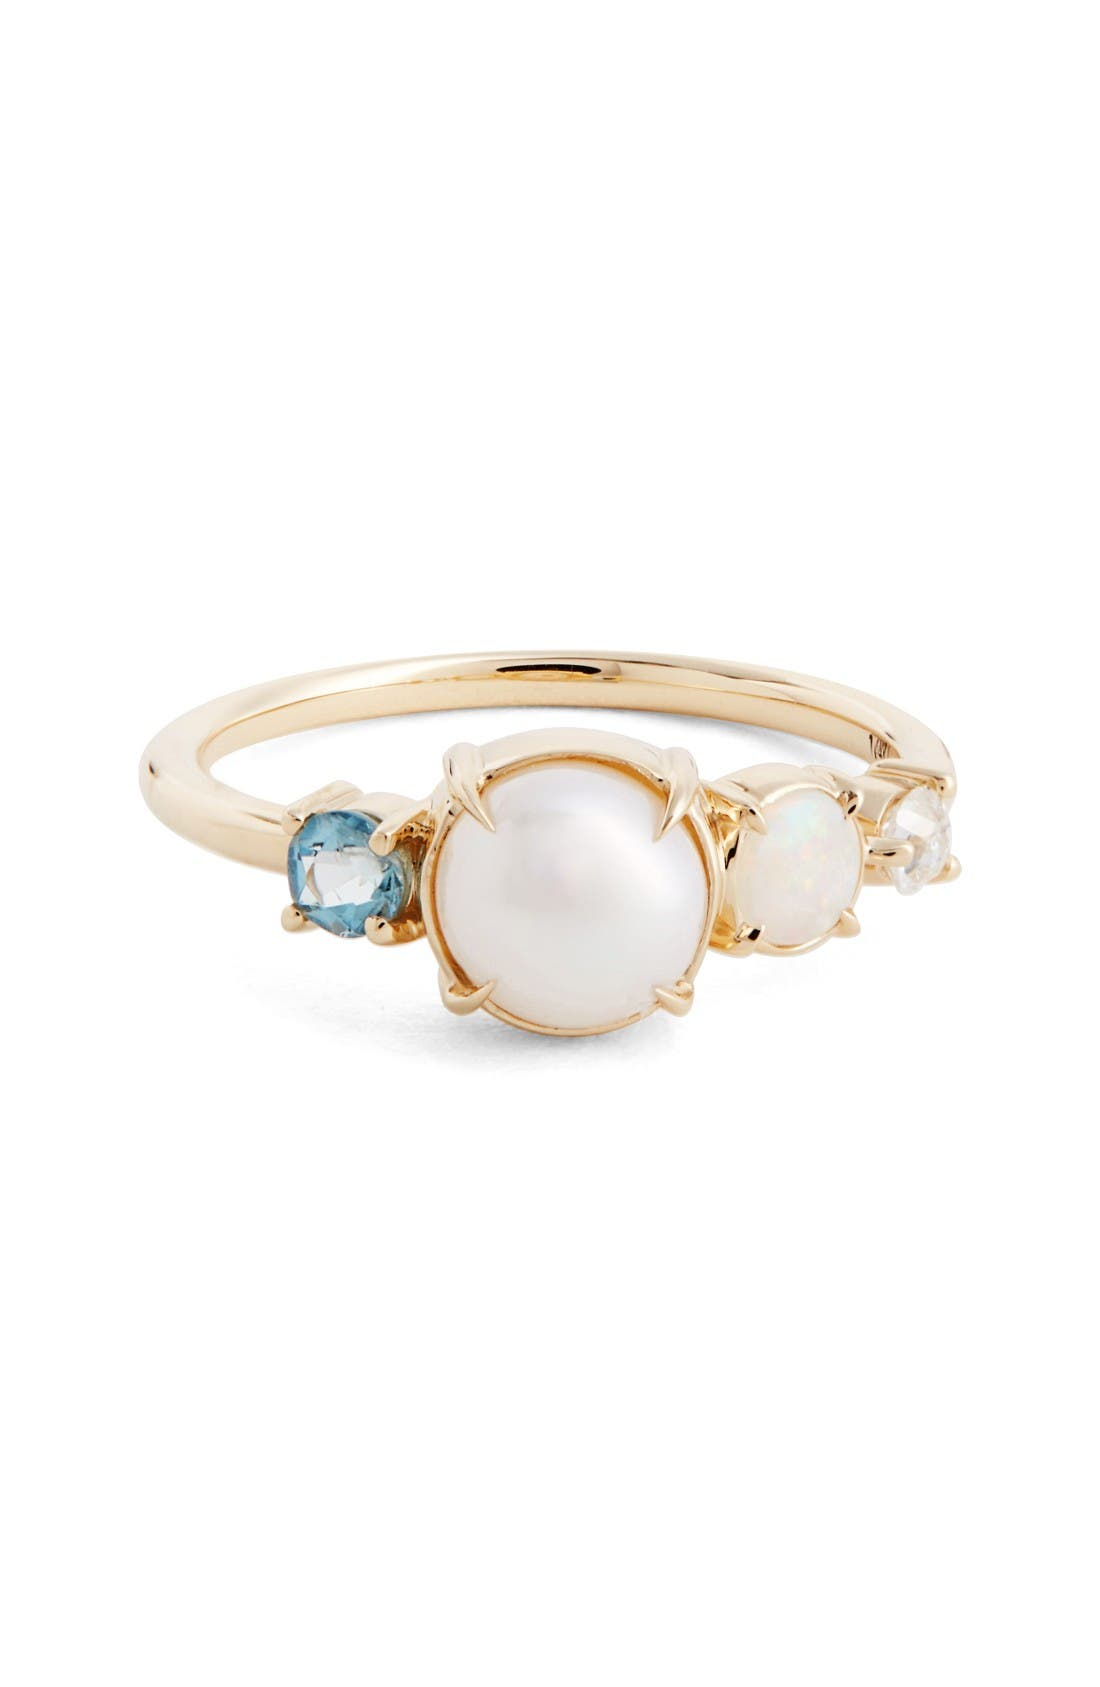 MOCIUN Pearl, Opal, Aquamarine & Diamond Ring (Nordstrom Exclusive)